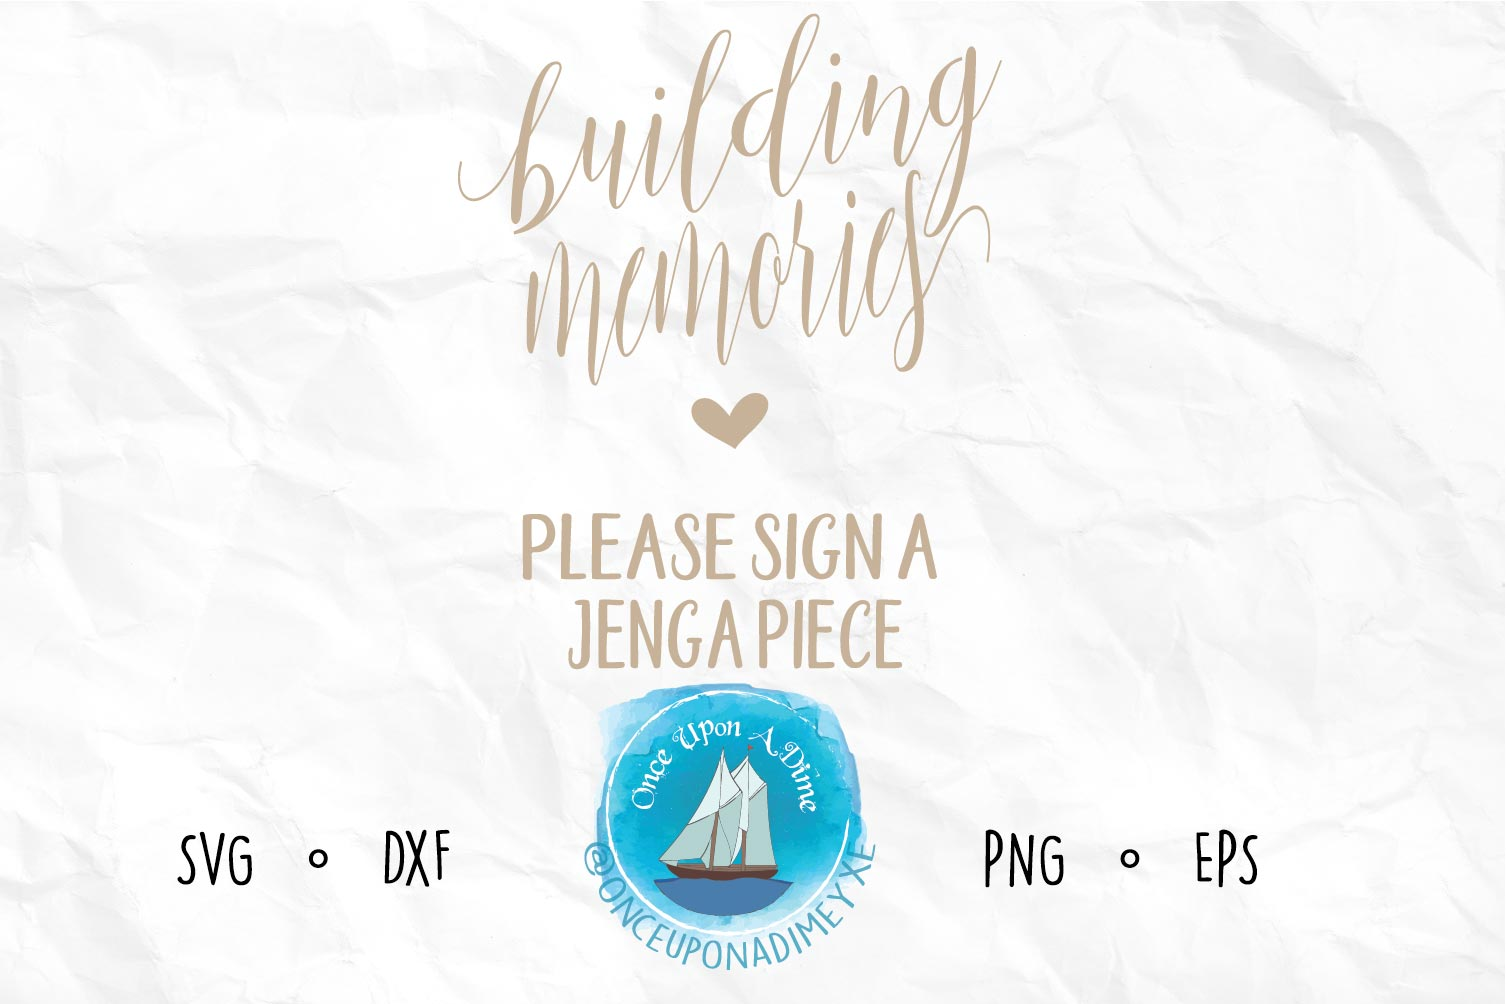 Building Memories | Wedding |Wedding SVG Cut File example image 1